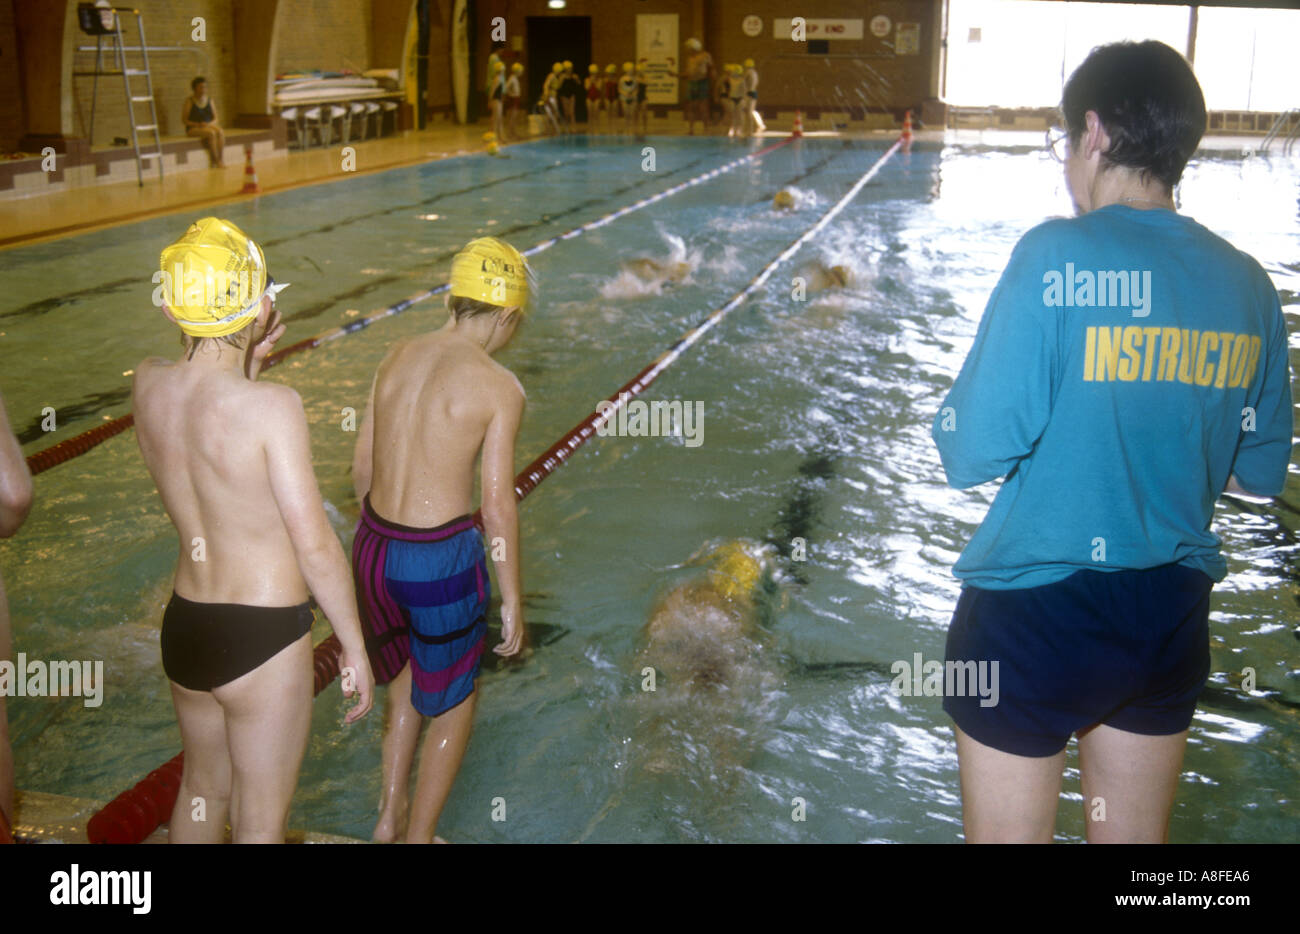 Children english class stock photos children english class stock images alamy for Williams indoor pool swim lessons